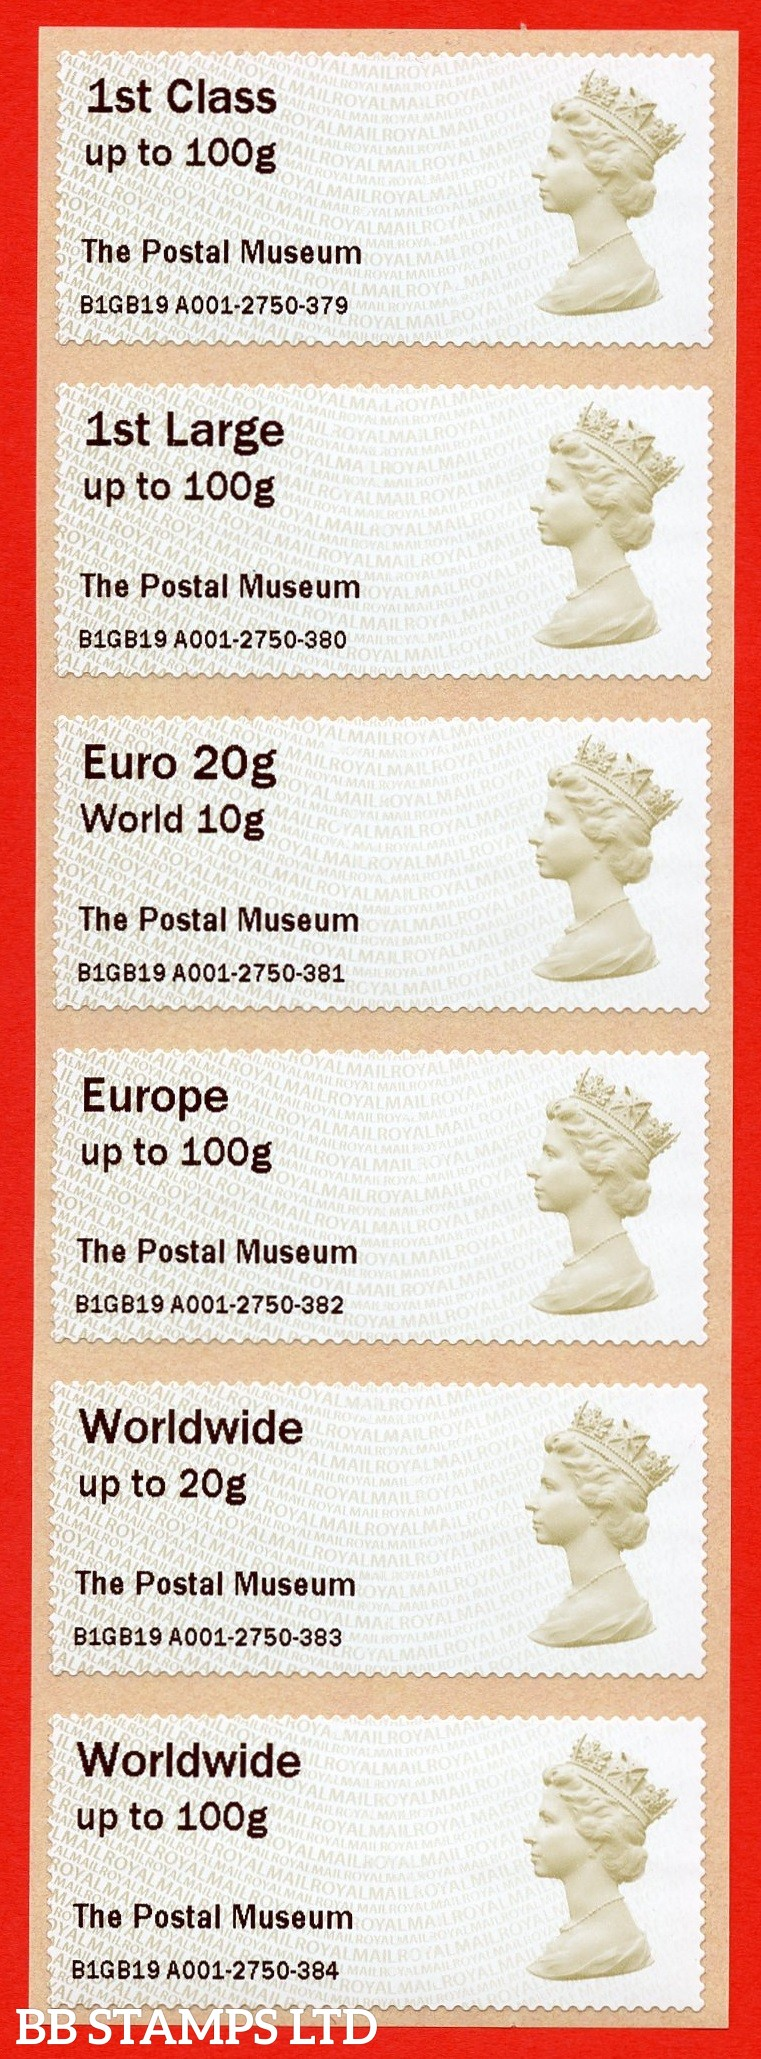 Machin The Postal Museum (set of 6) 1st - Worldwide 100g: MA15 Type IIIA (Issued 2019) (BK28,P11)